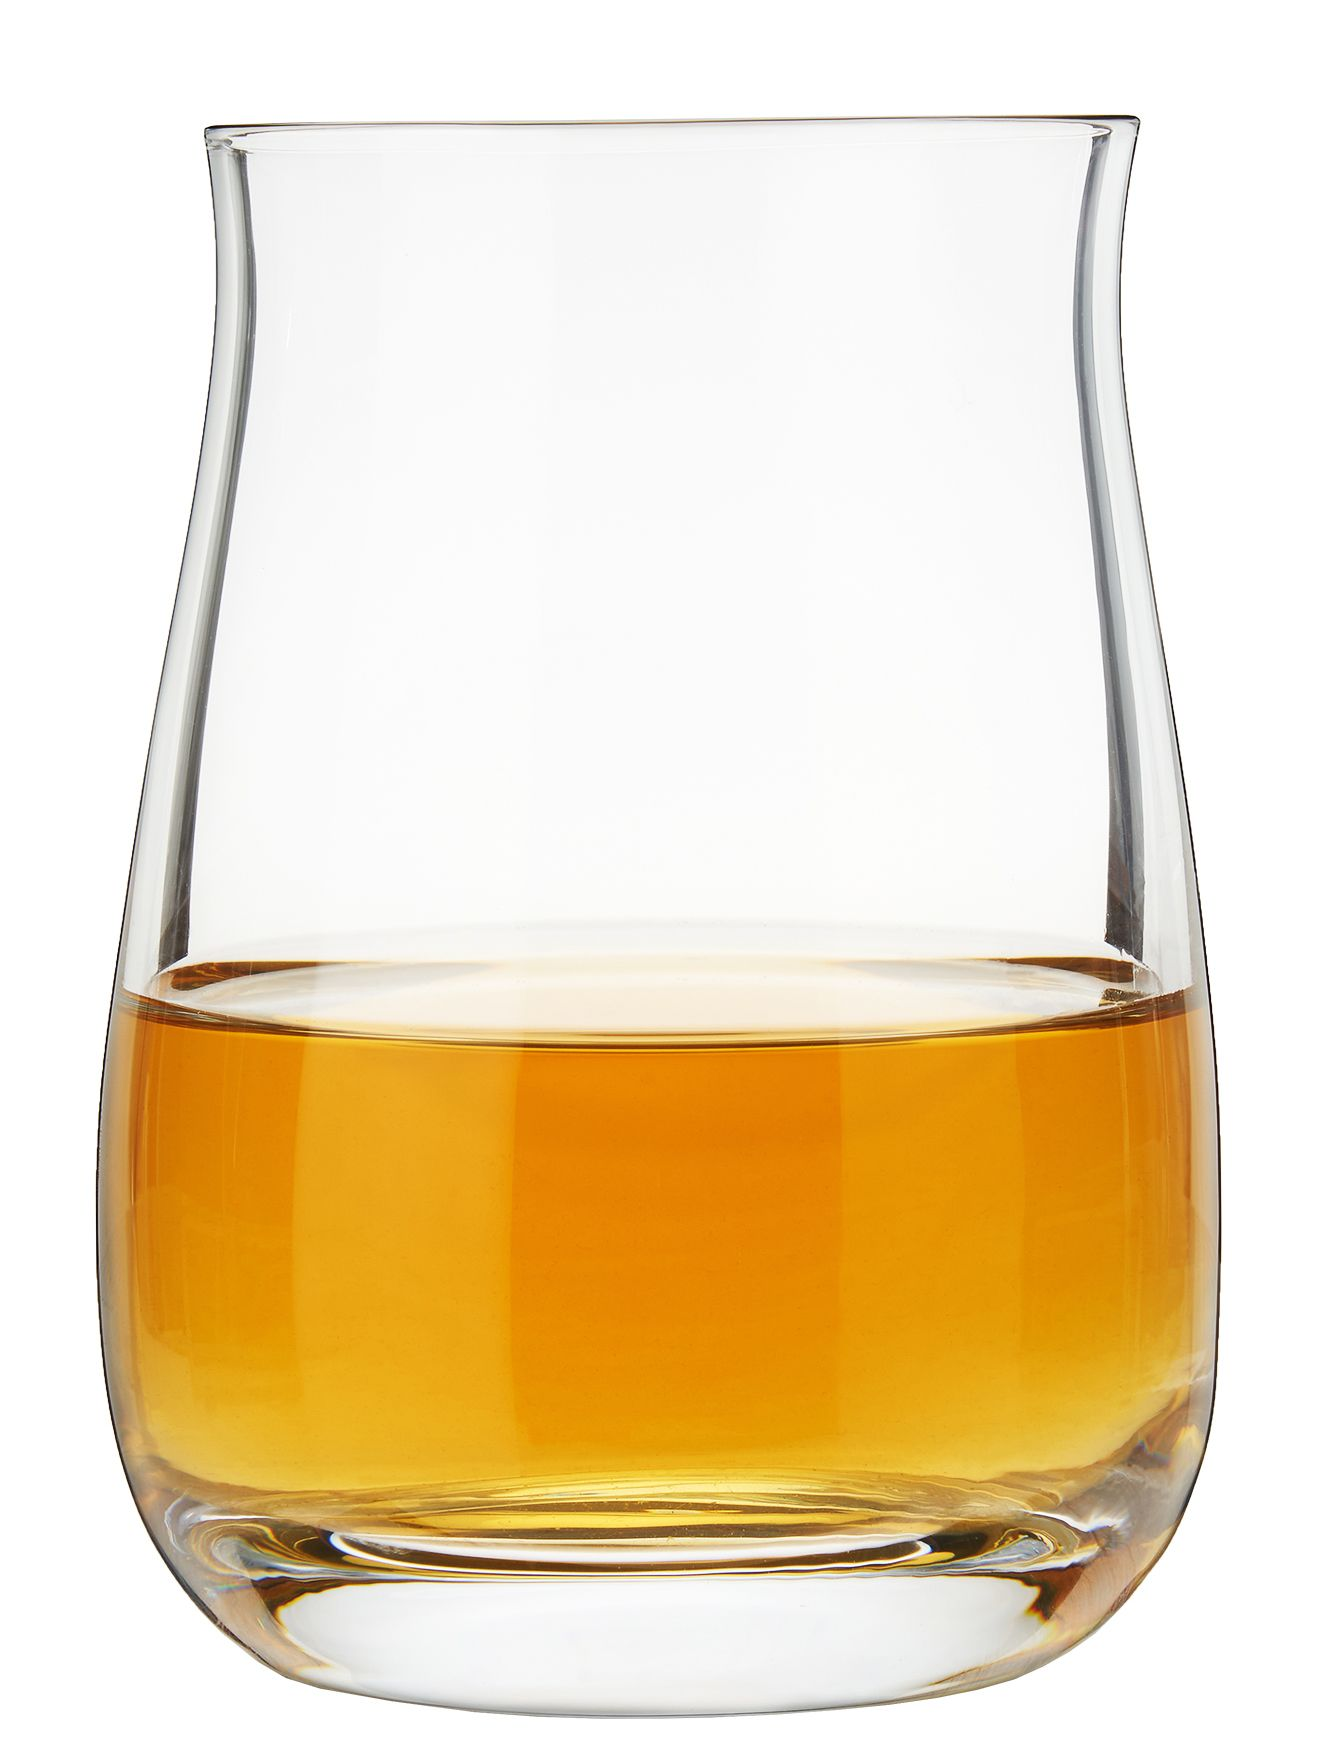 Spiegelau Single Barrel Bourbon Glass (Set of 4) Gift Product Image